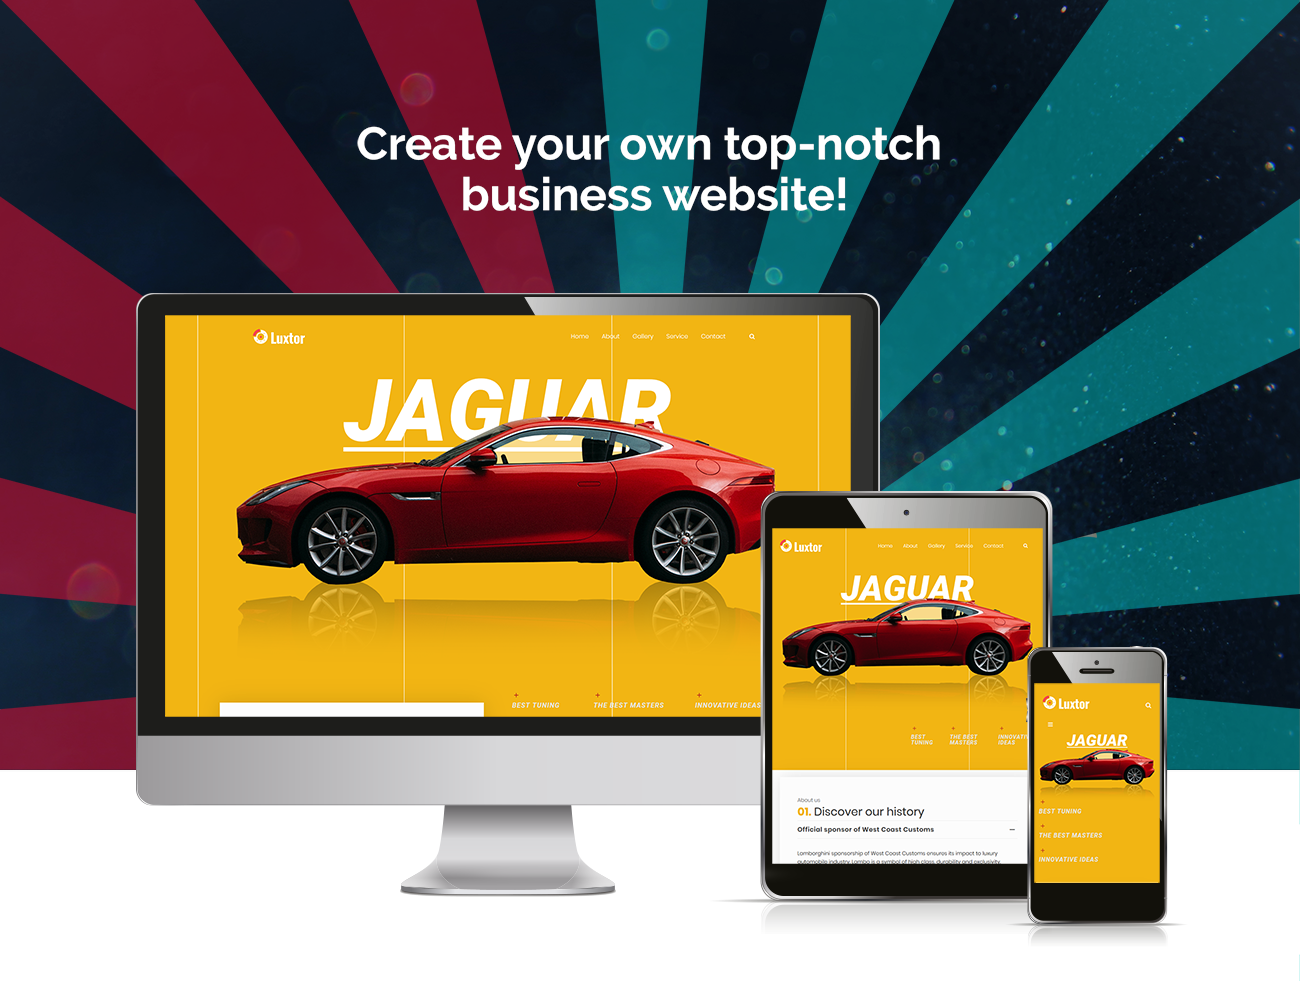 Website Design Template 73611 - repair garage workshop tuning motorcycles wheels tires mechanic transmission brake radiator automotive seo business company premium responsive